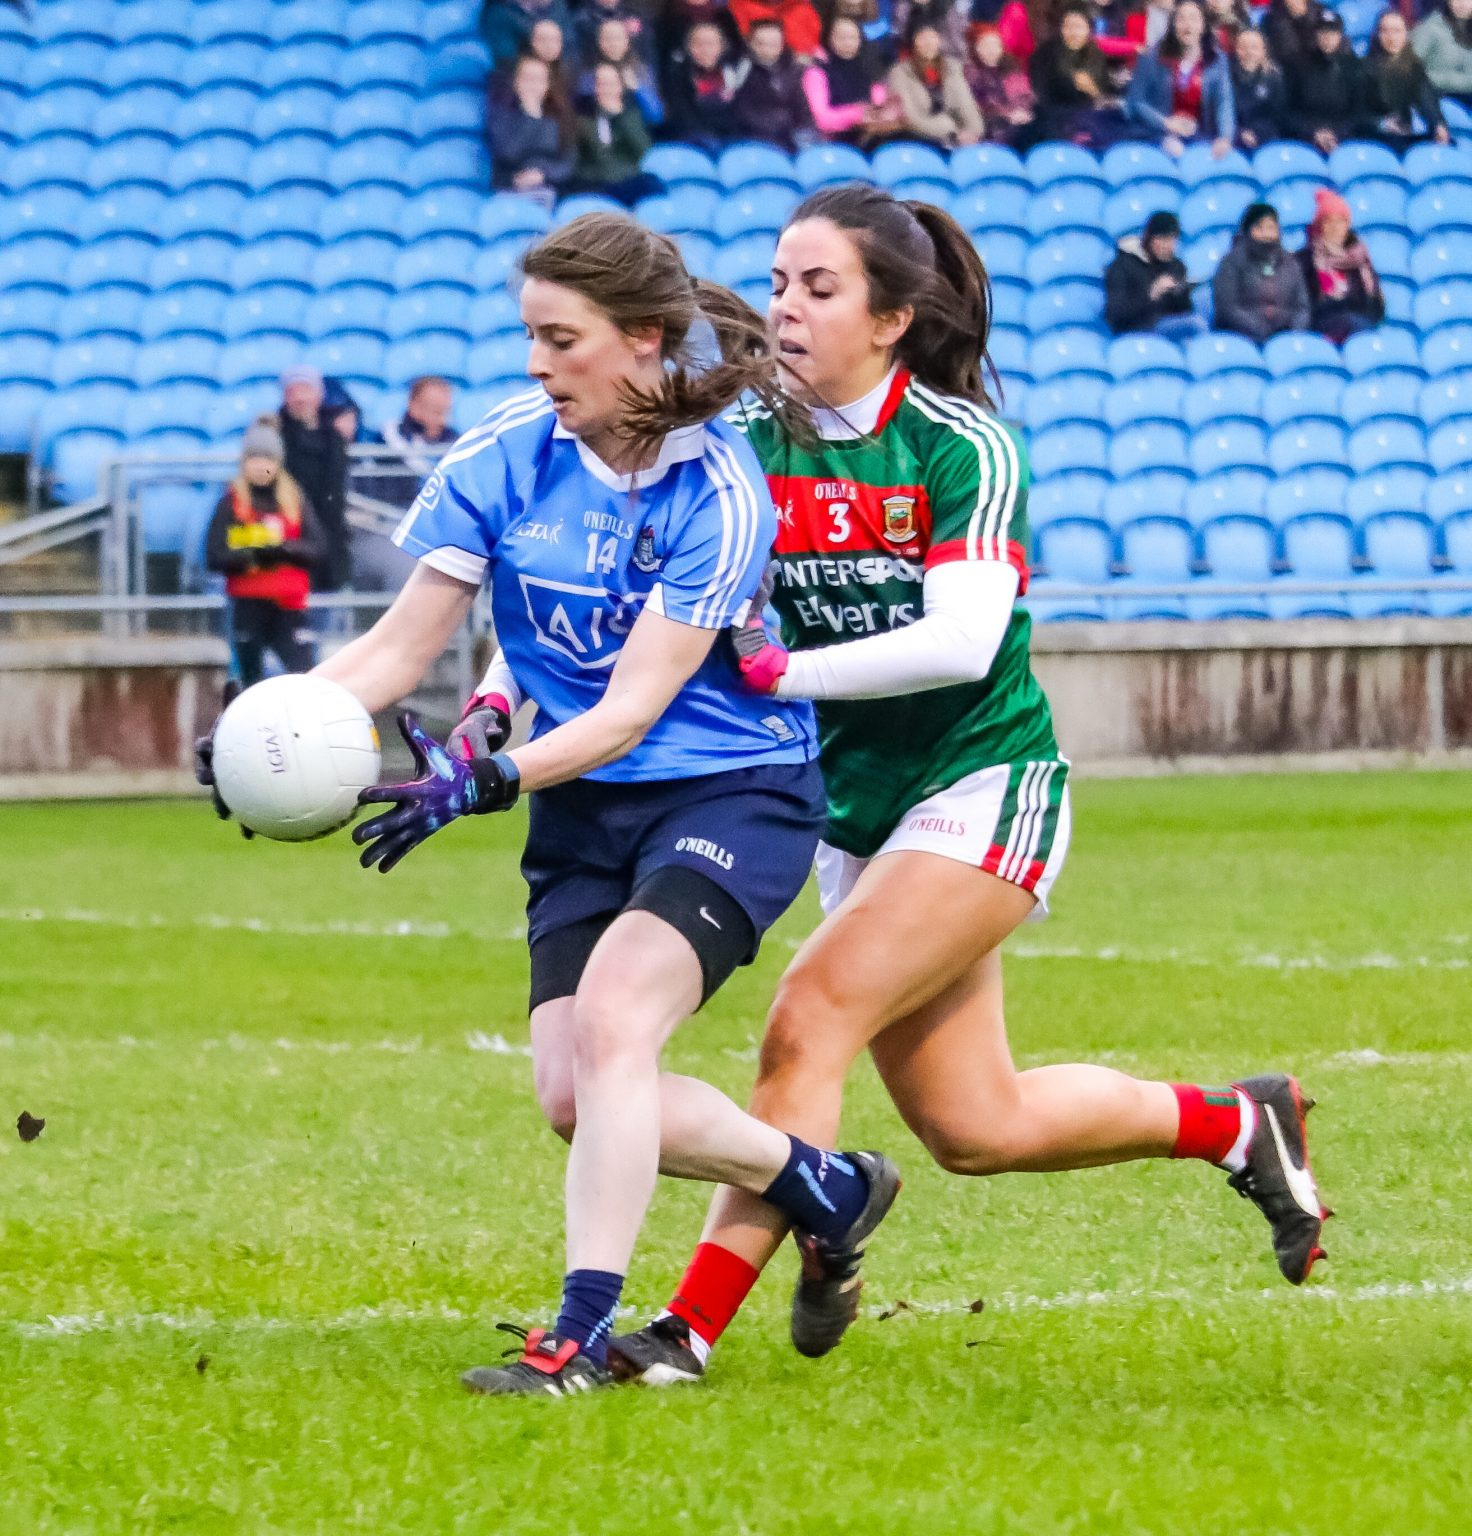 Oonagh Whyte Scored Two Goals Tonight Against Mayo As The Dublin's Ladies Recoded Their Fourth Win In A Row In the Lidl Ladies NFL (Mandatory Credit: We Are Dublin GAA)